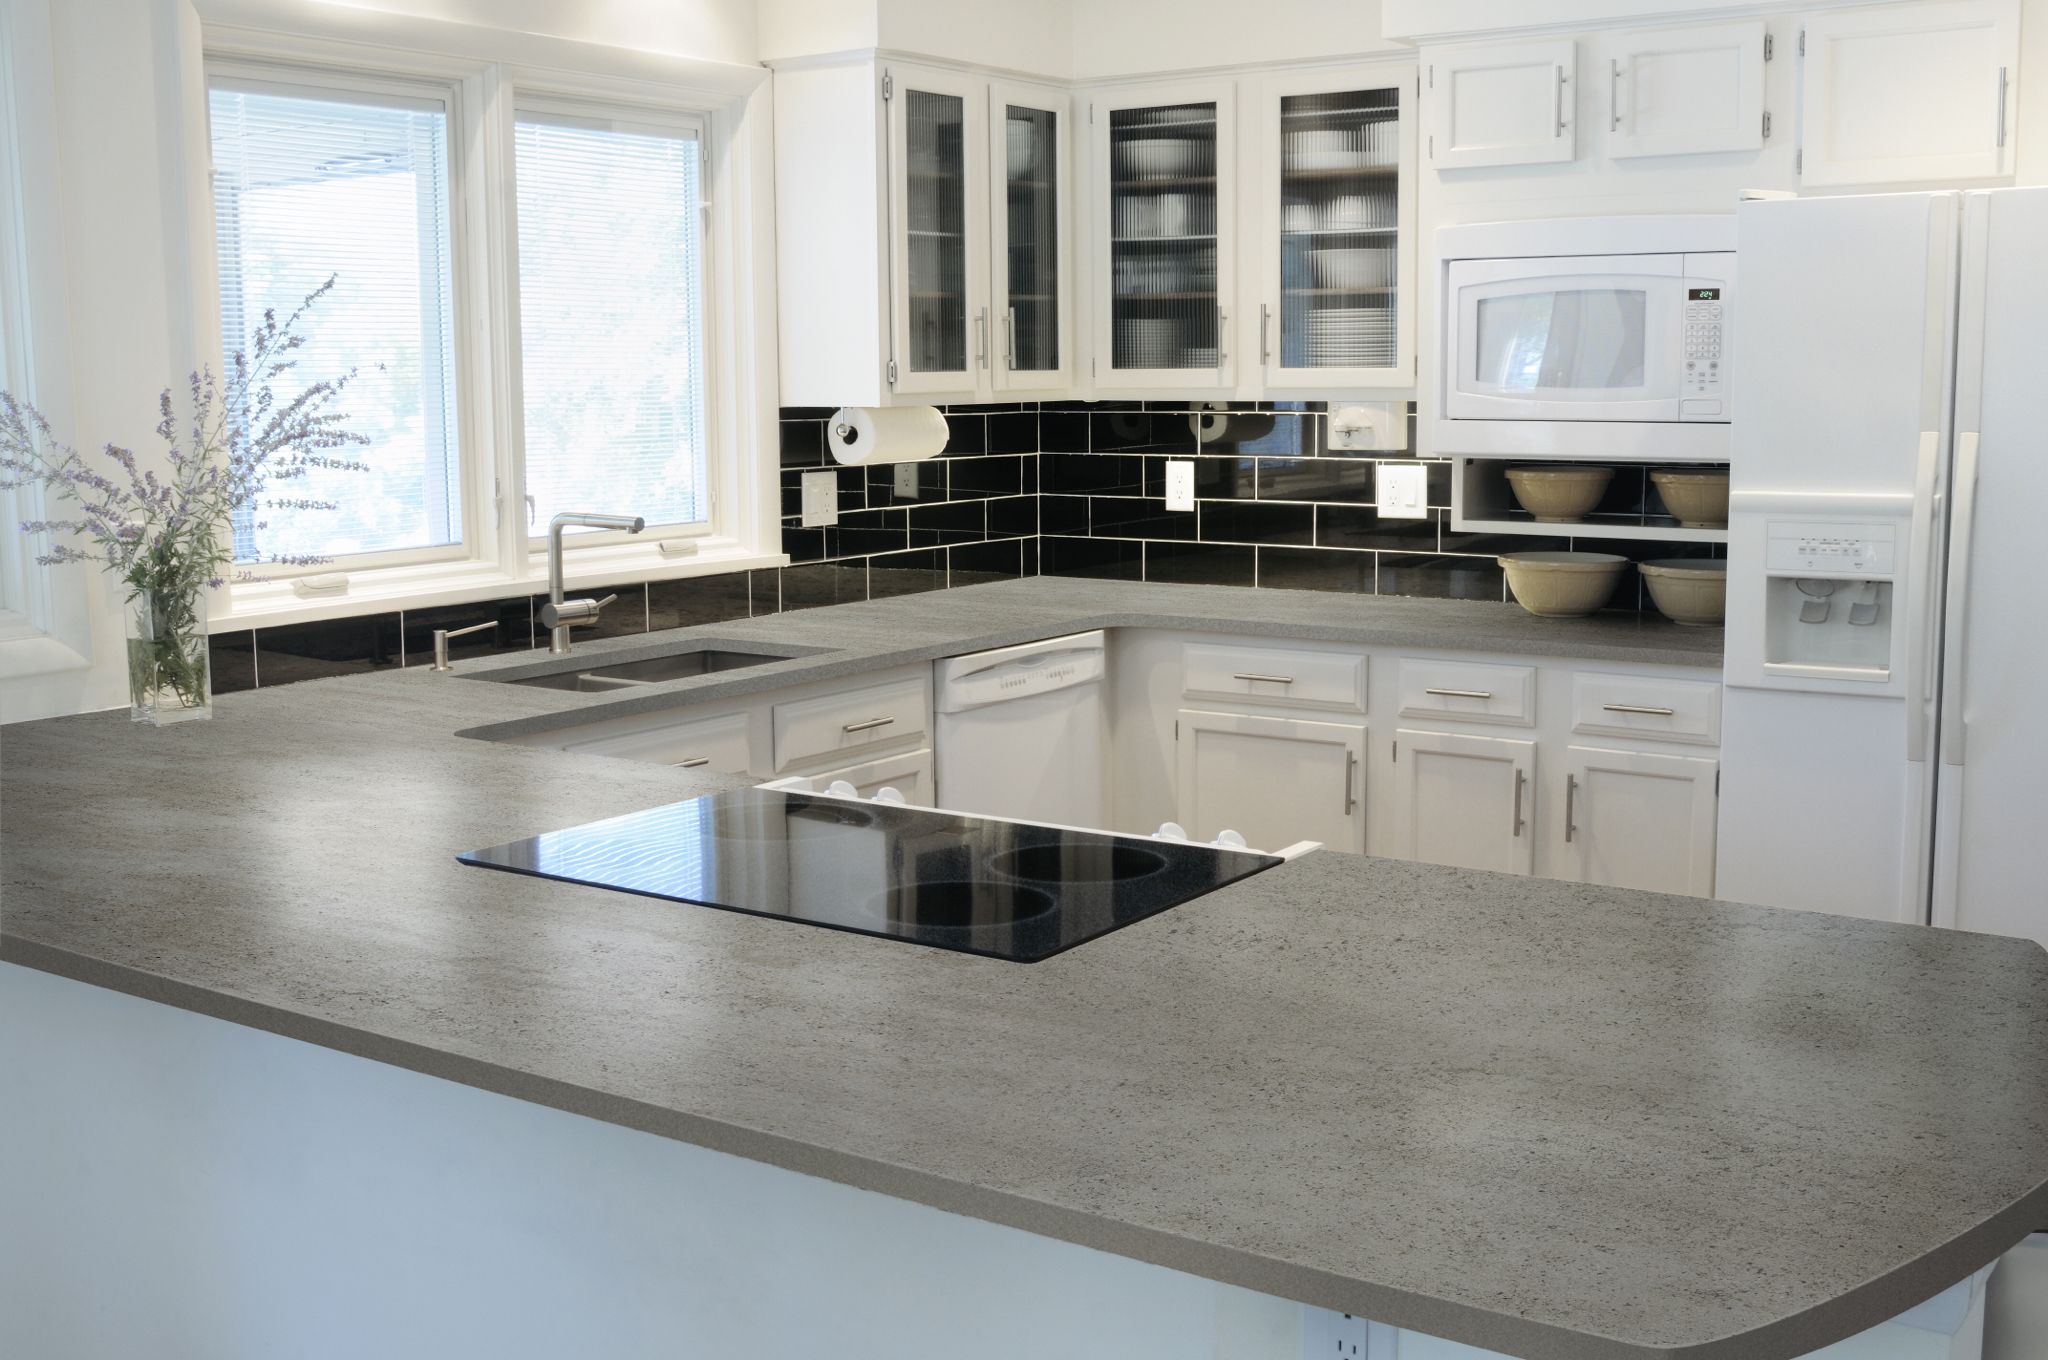 Atlantic Keuken Dekton Keon Wonen Kitchen Countertops Granite Kitchen En